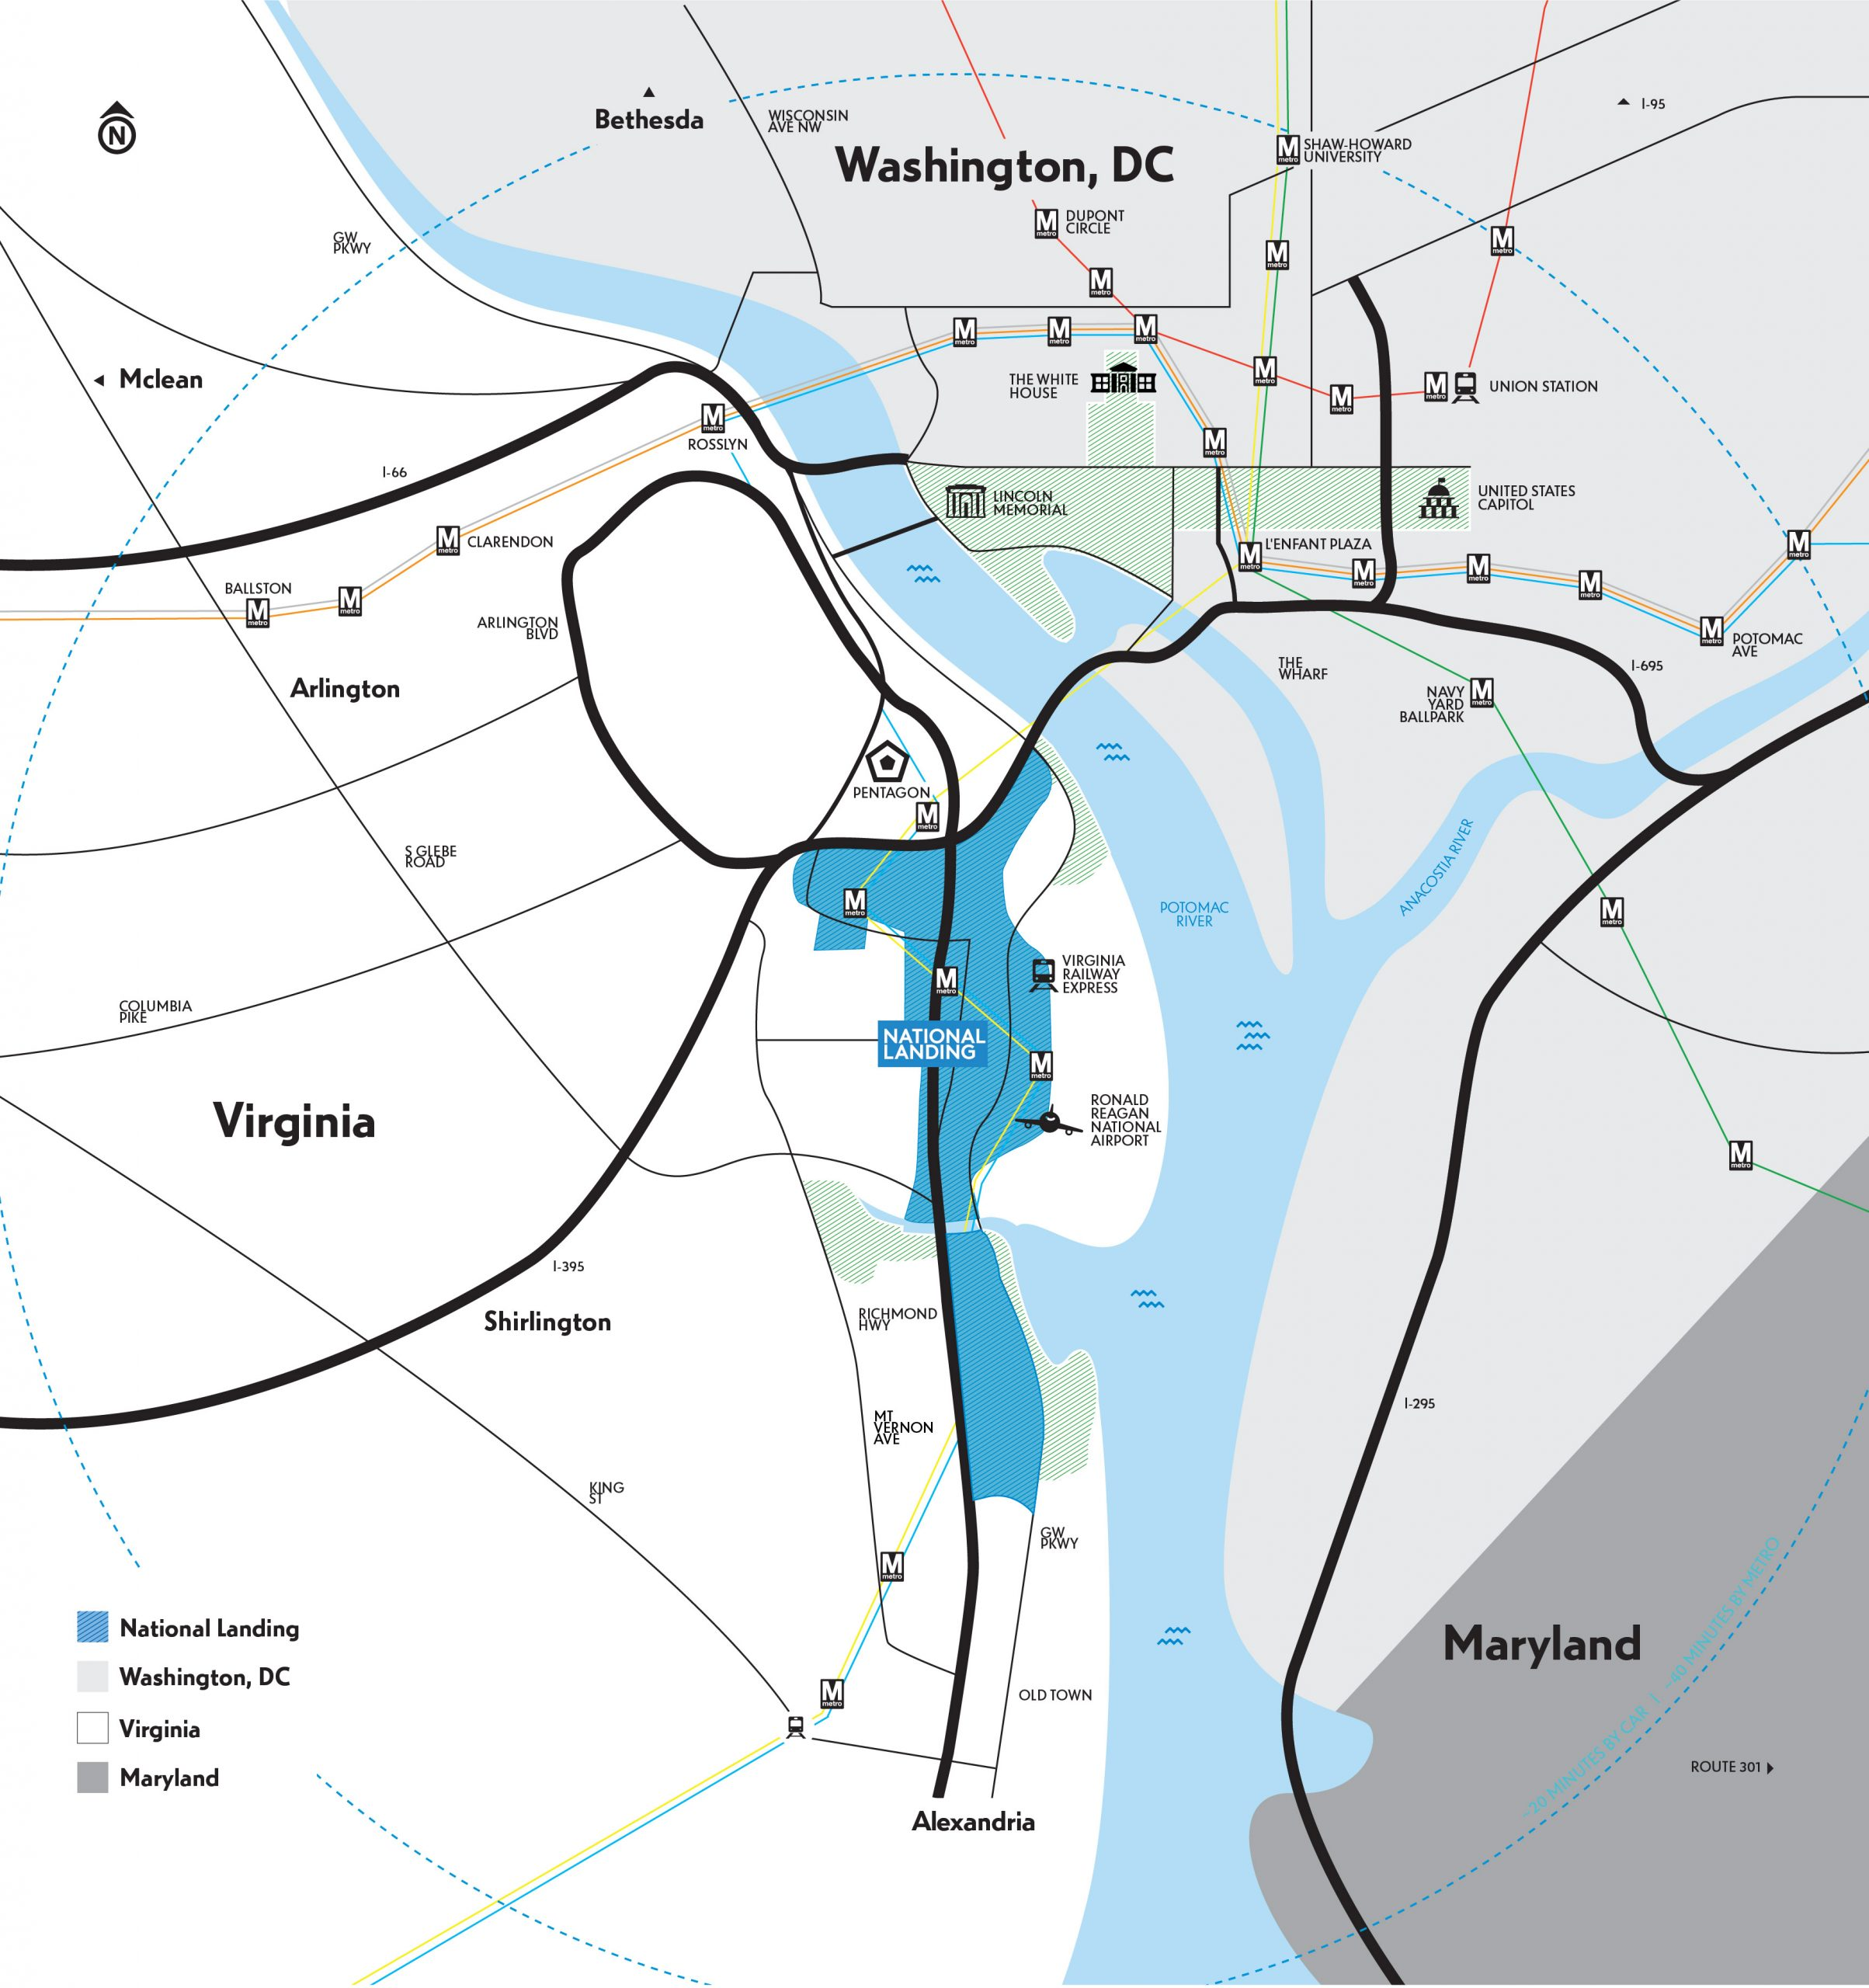 Map of National Landing in context of the greater Washington, DC area